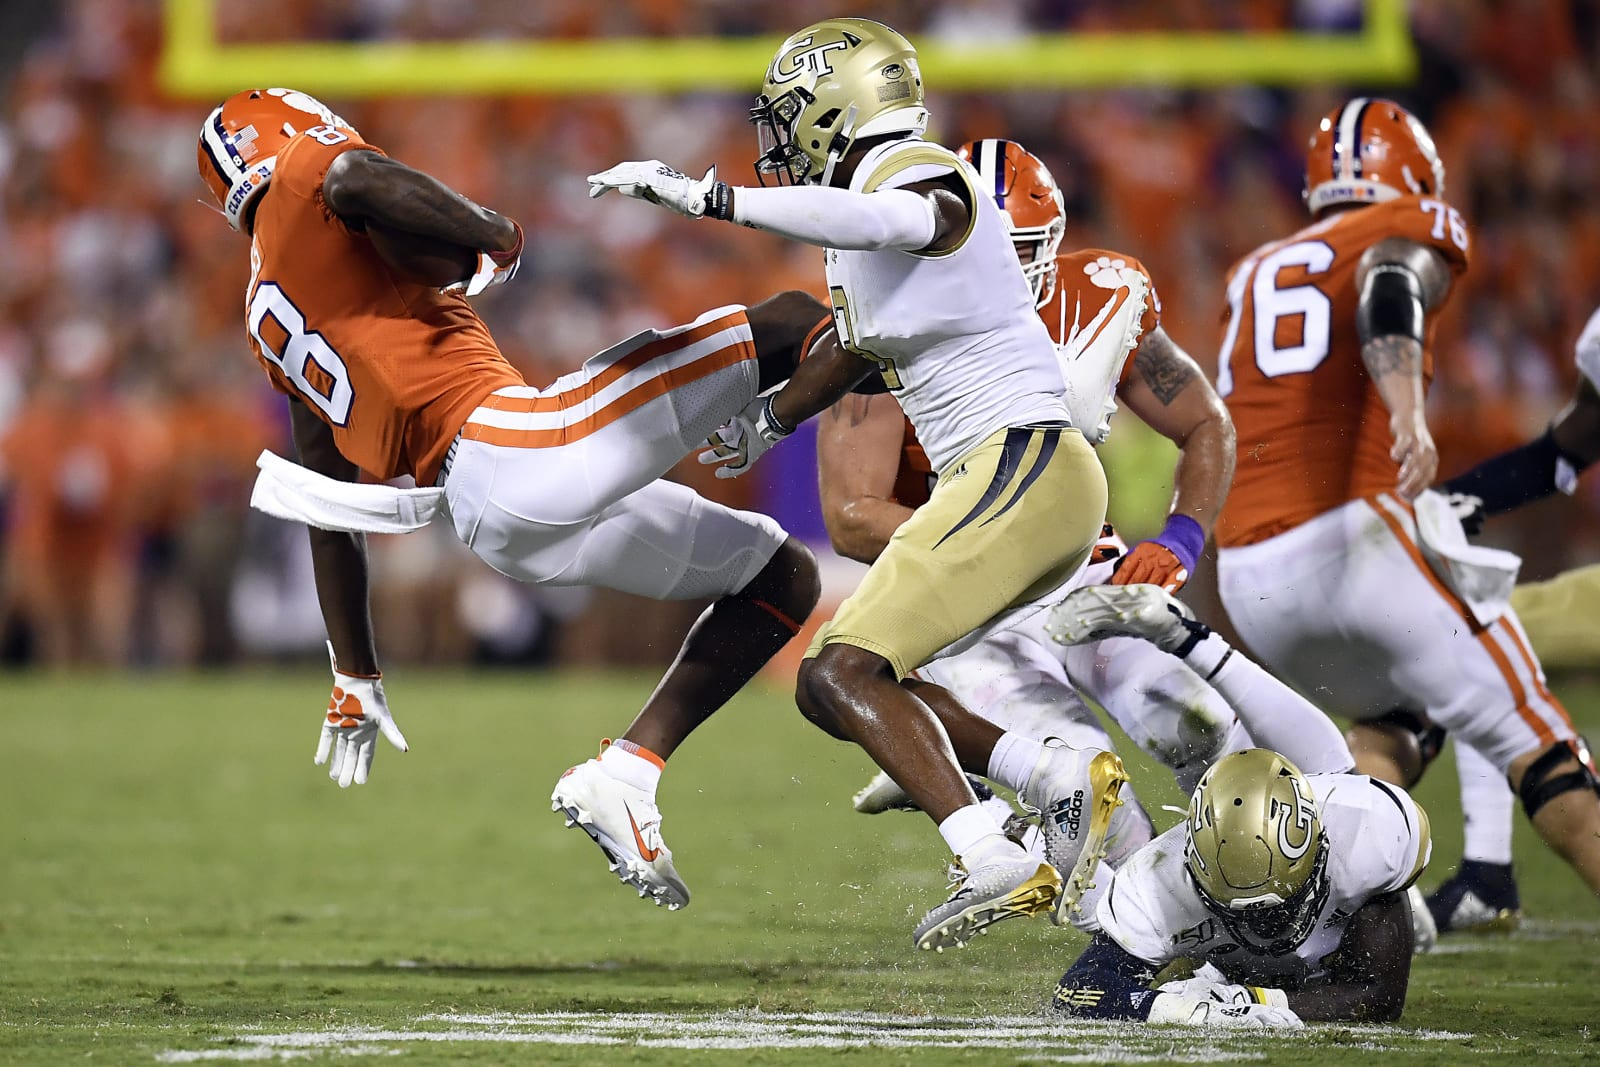 Clemson Football: Midseason Studs and Duds 2019 - Page 4